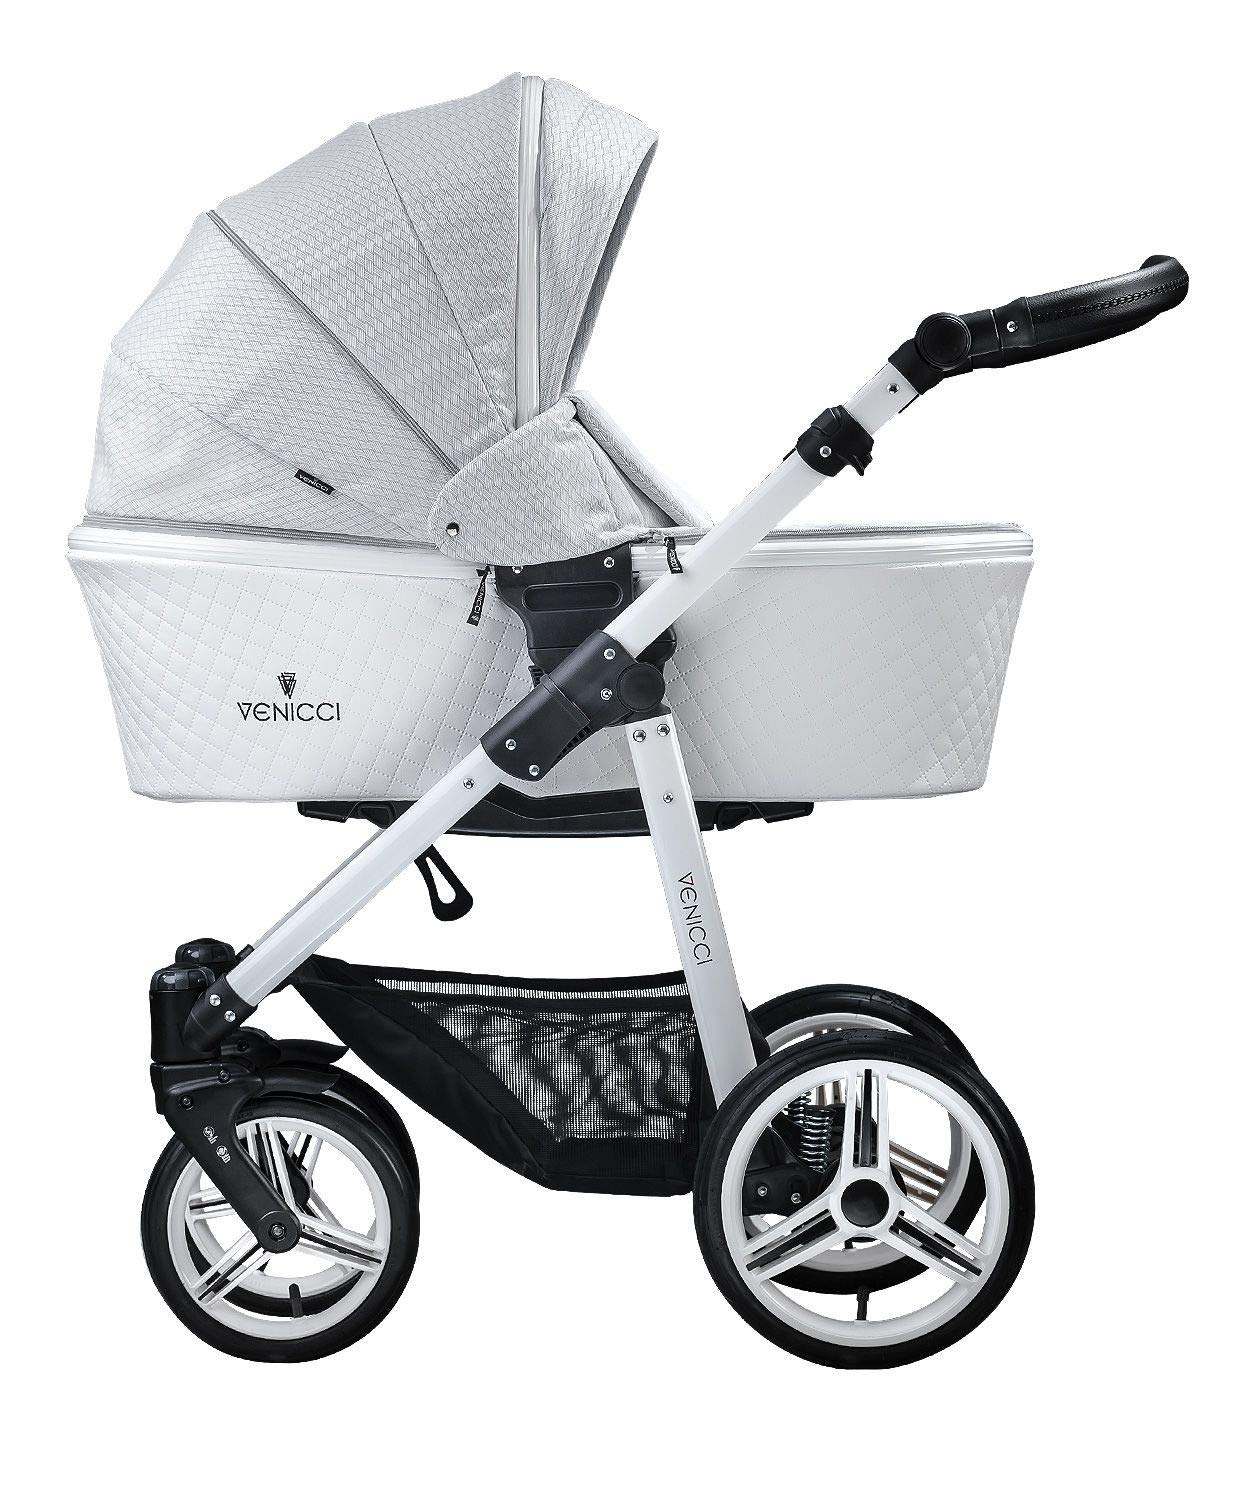 Venicci Pure 3-in-1 Travel System - Stone Grey - with Carrycot + Car Seat + Changing Bag + Apron + Raincover + Mosquito Net + 5-Point Harness and UV 50+ Fabric + Car Seat Adapters + Cup Holder  3 in 1 Travel System with included Group 0+ Car Seat Suitable for your baby from birth until 36 months 5-point harness to enhance the safety of your child 2